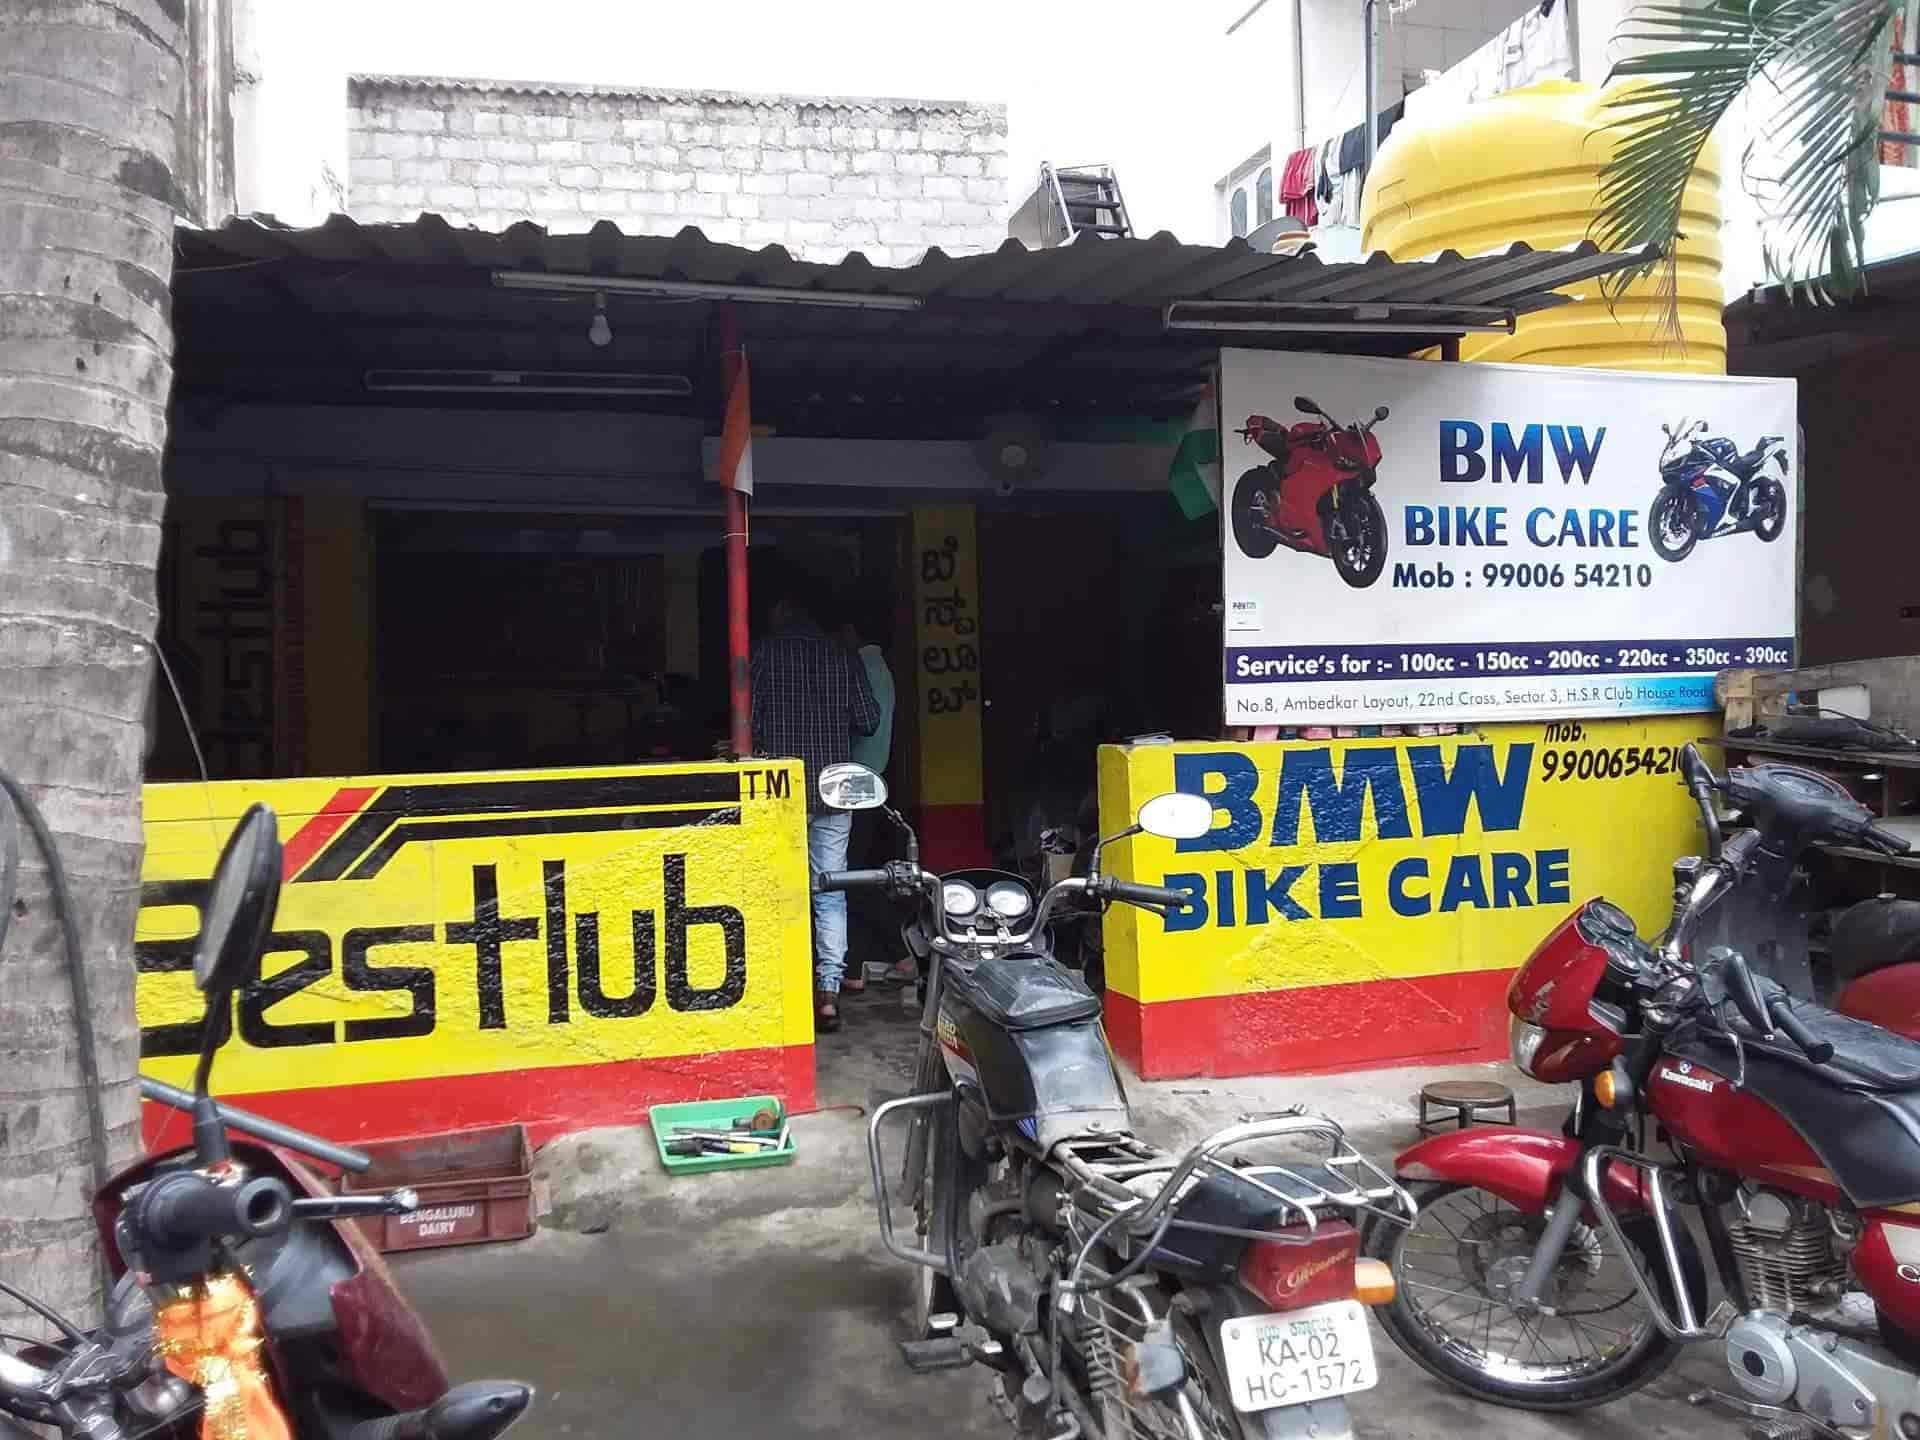 B M W Motor Bike Care Hsr Layout Sector 3 Motorcycle Repair Services In Bangalore Justdial